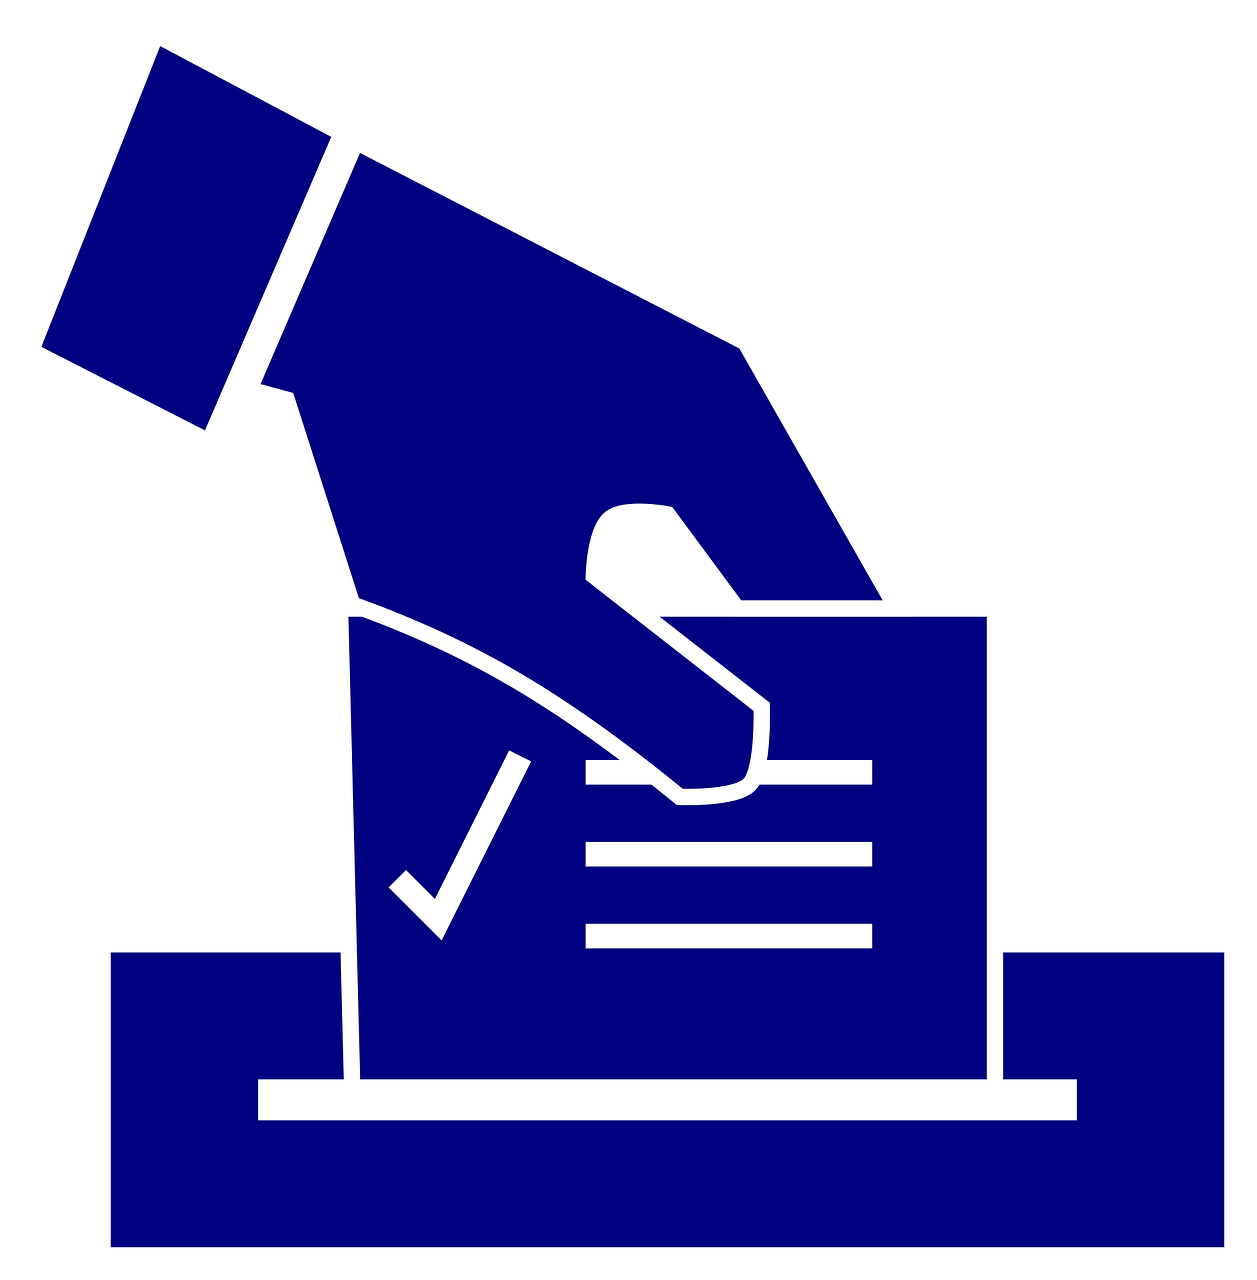 Democracy clipart ballot box. A big day for